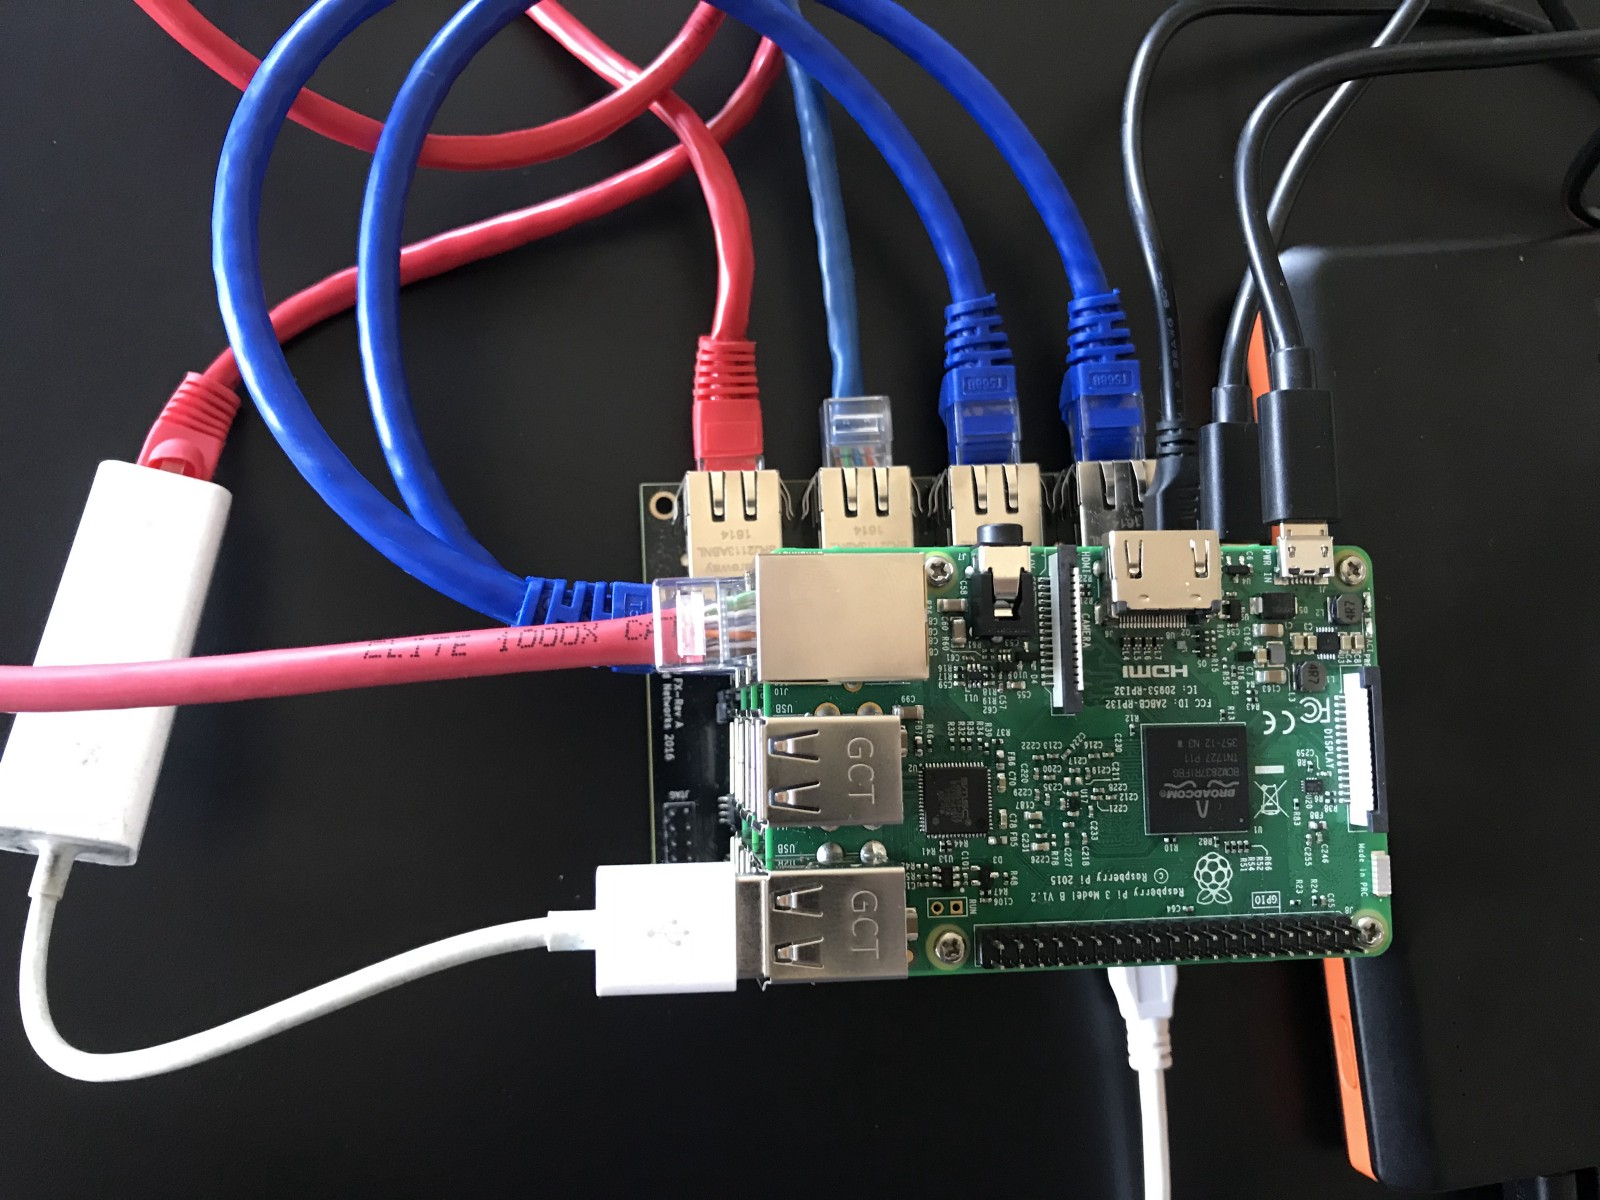 Building A Software Defined Network With Raspberry Pis And Zodiac Wiring Switch Electronics Fx